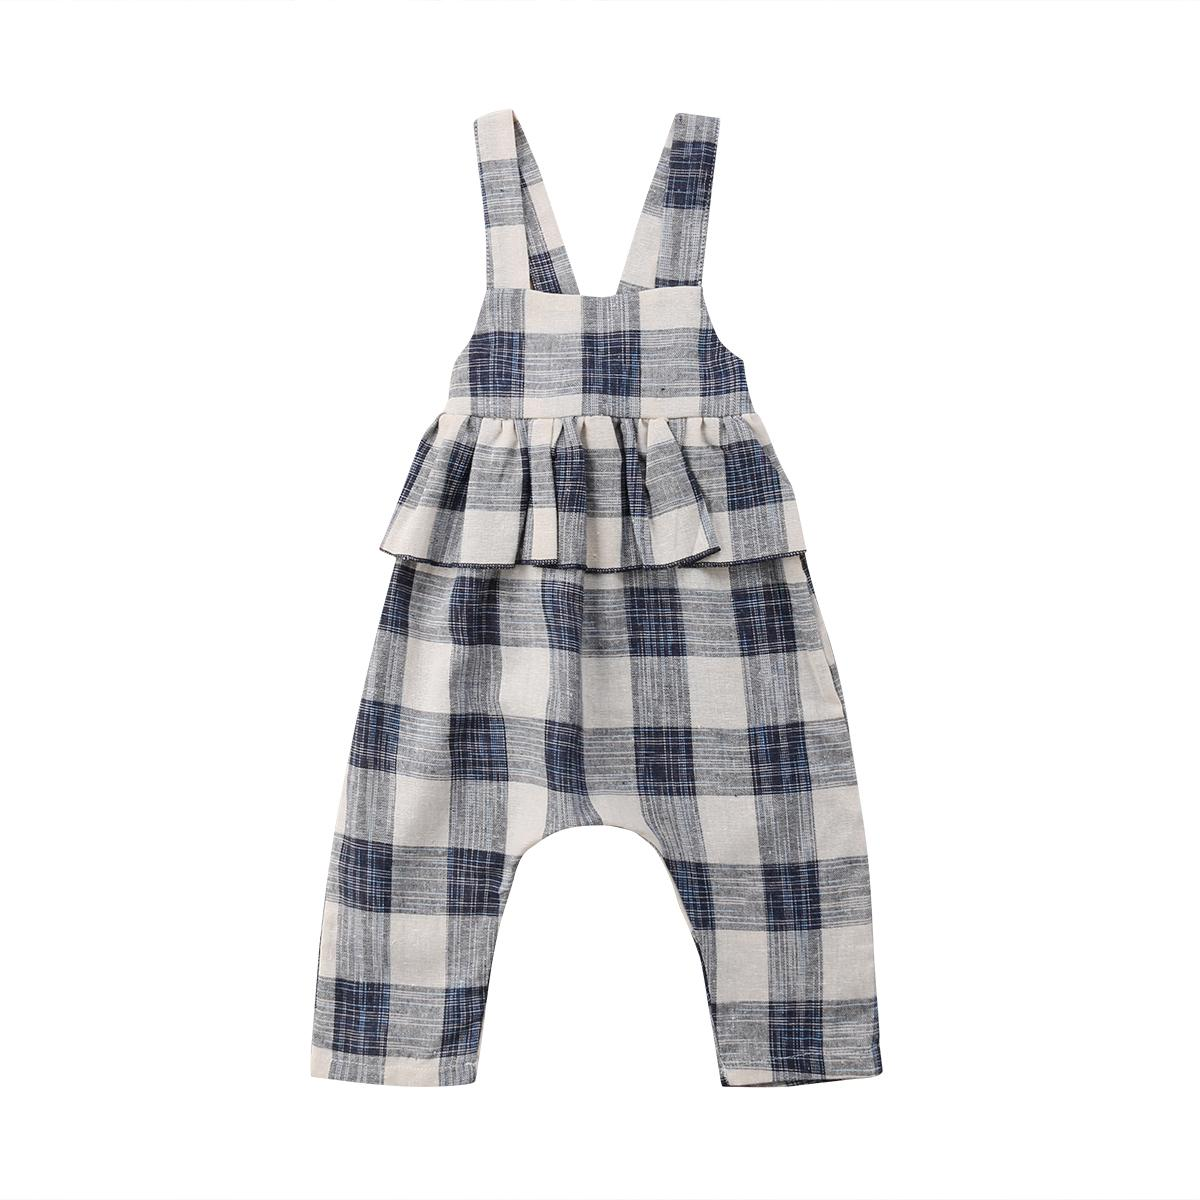 Overalls Mutter & Kinder Mode Kinder Mädchen Strap Blume Overalls Sleeveless Strampler Overall Overall Outfit One Piece Kleidung